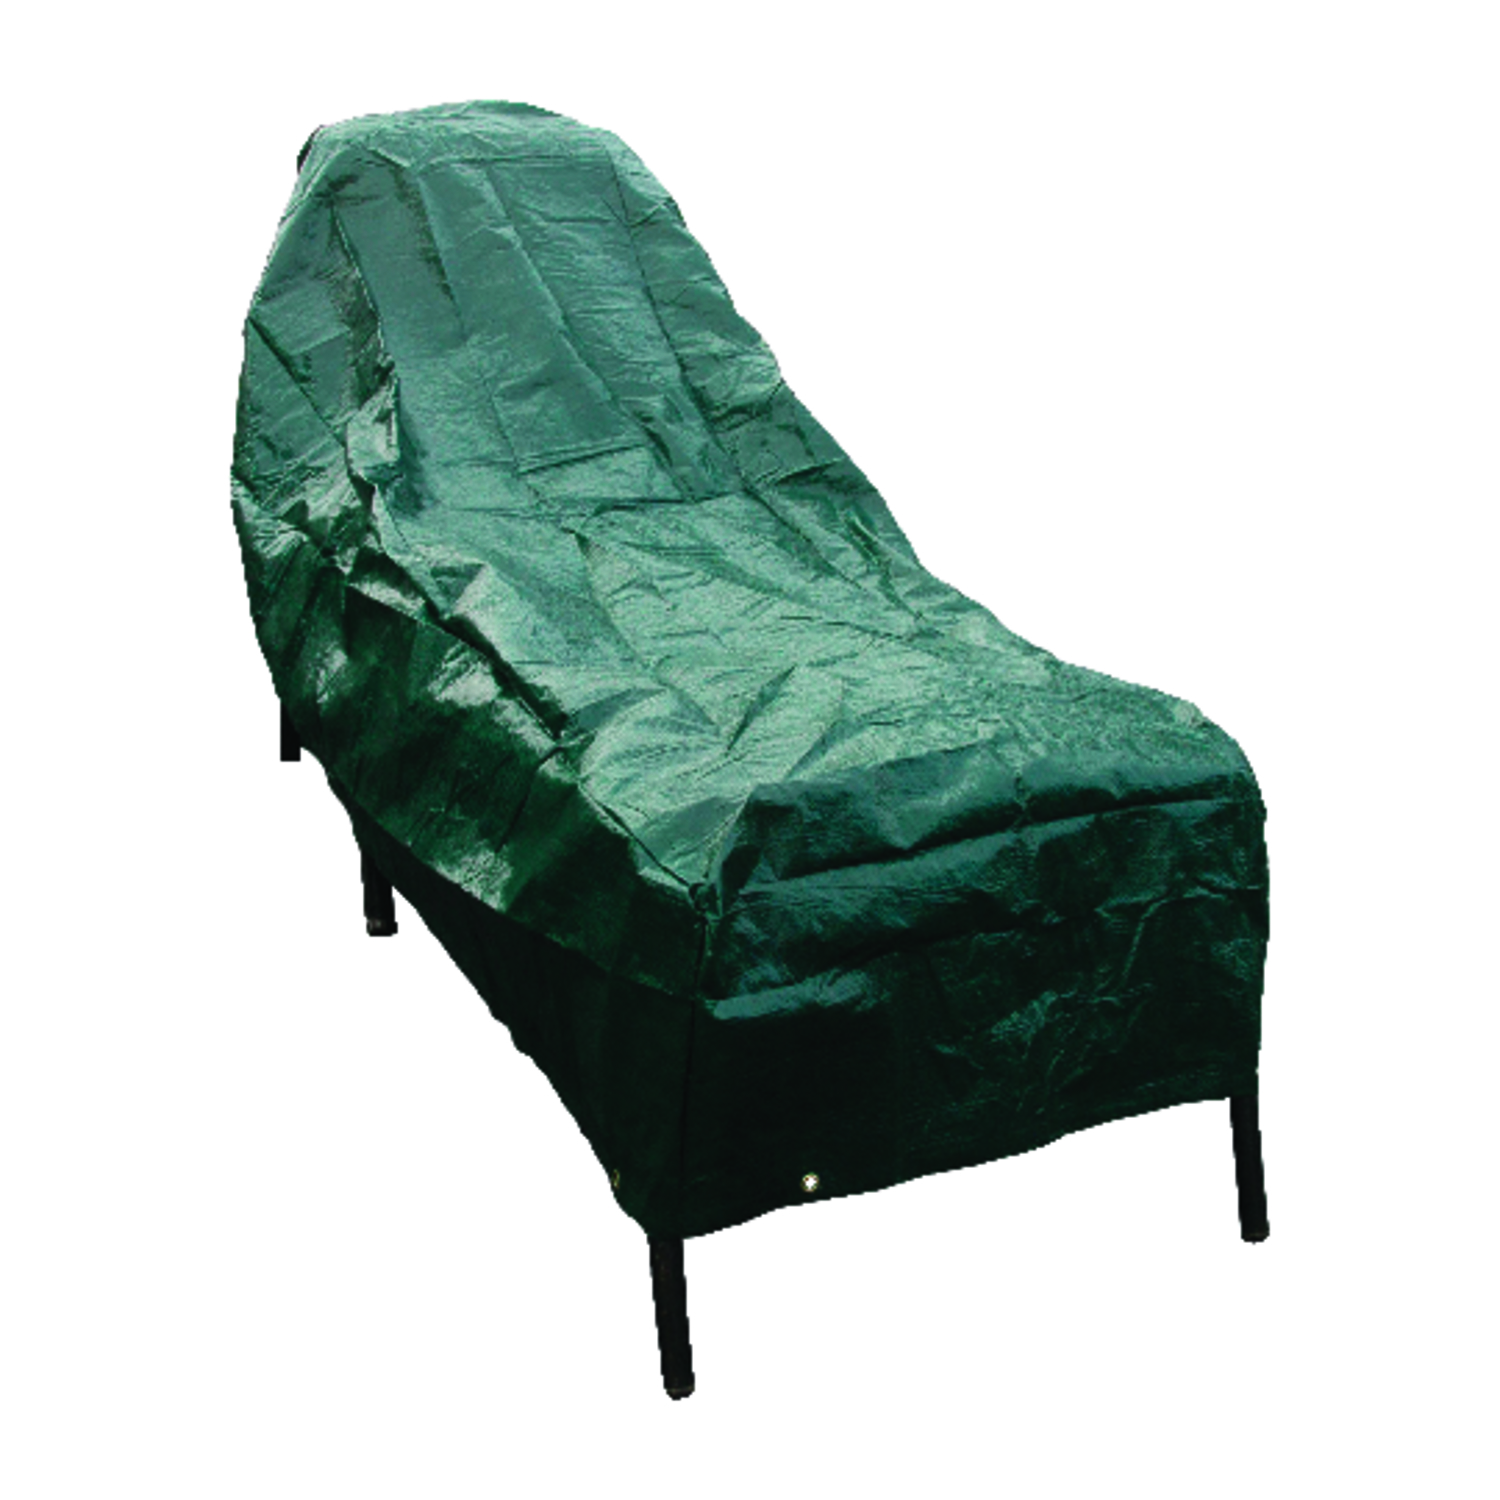 Budge  30 in. H x 80 in. W x 27 in. L Green  Polyethylene�  Chaise Lounge Cover